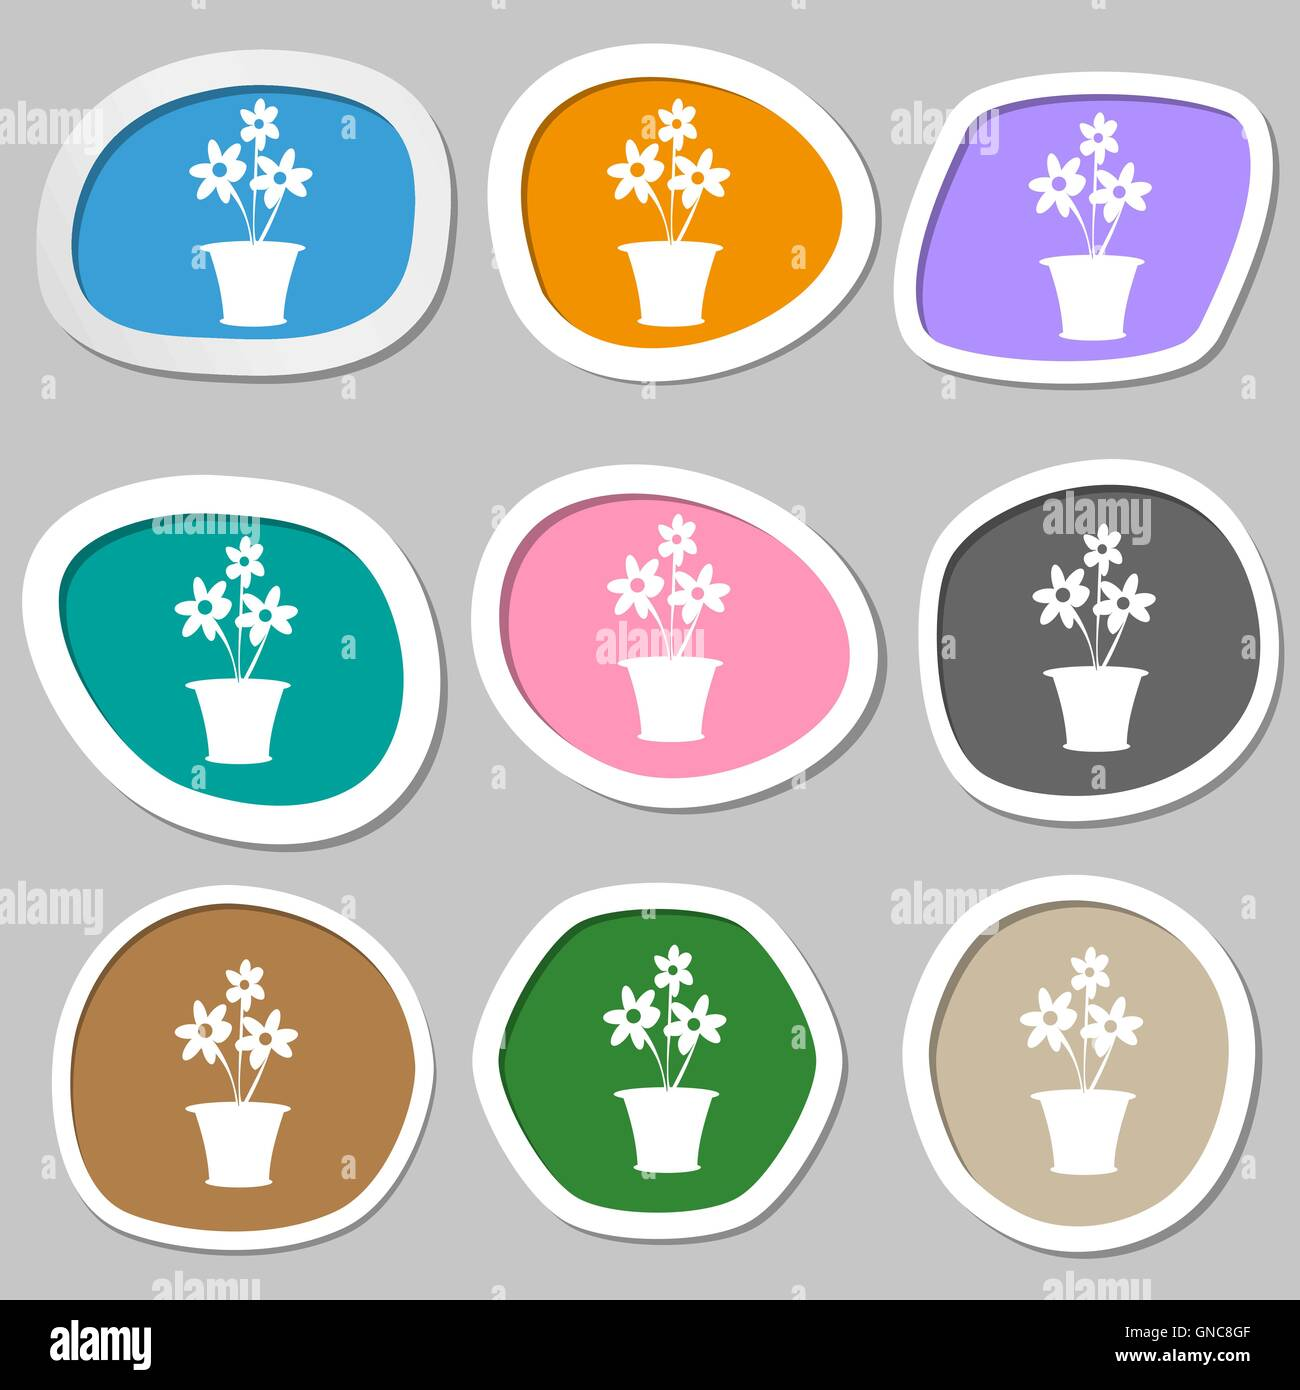 Vase Of Flowers Symbols Multicolored Paper Stickers Vector Stock